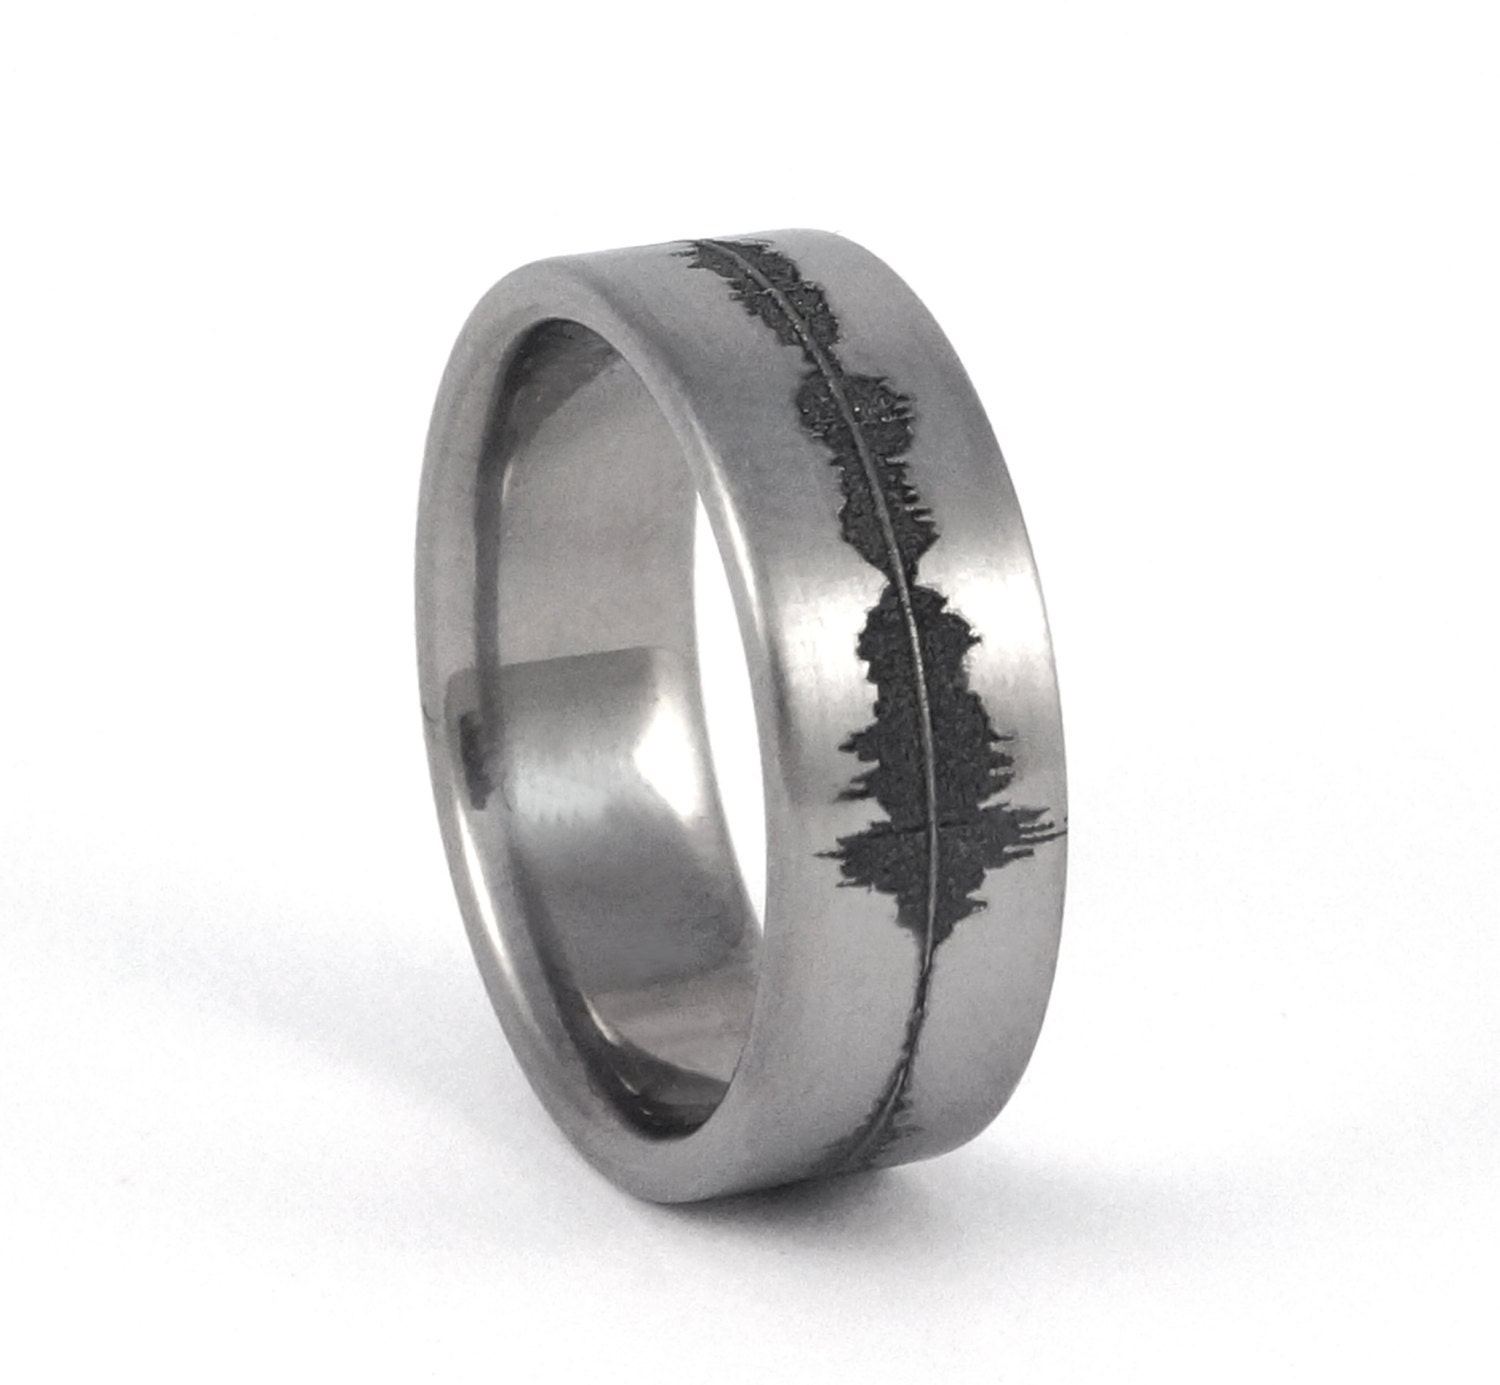 Custom Titanium Soundwave Ring Geek Wedding Band for him